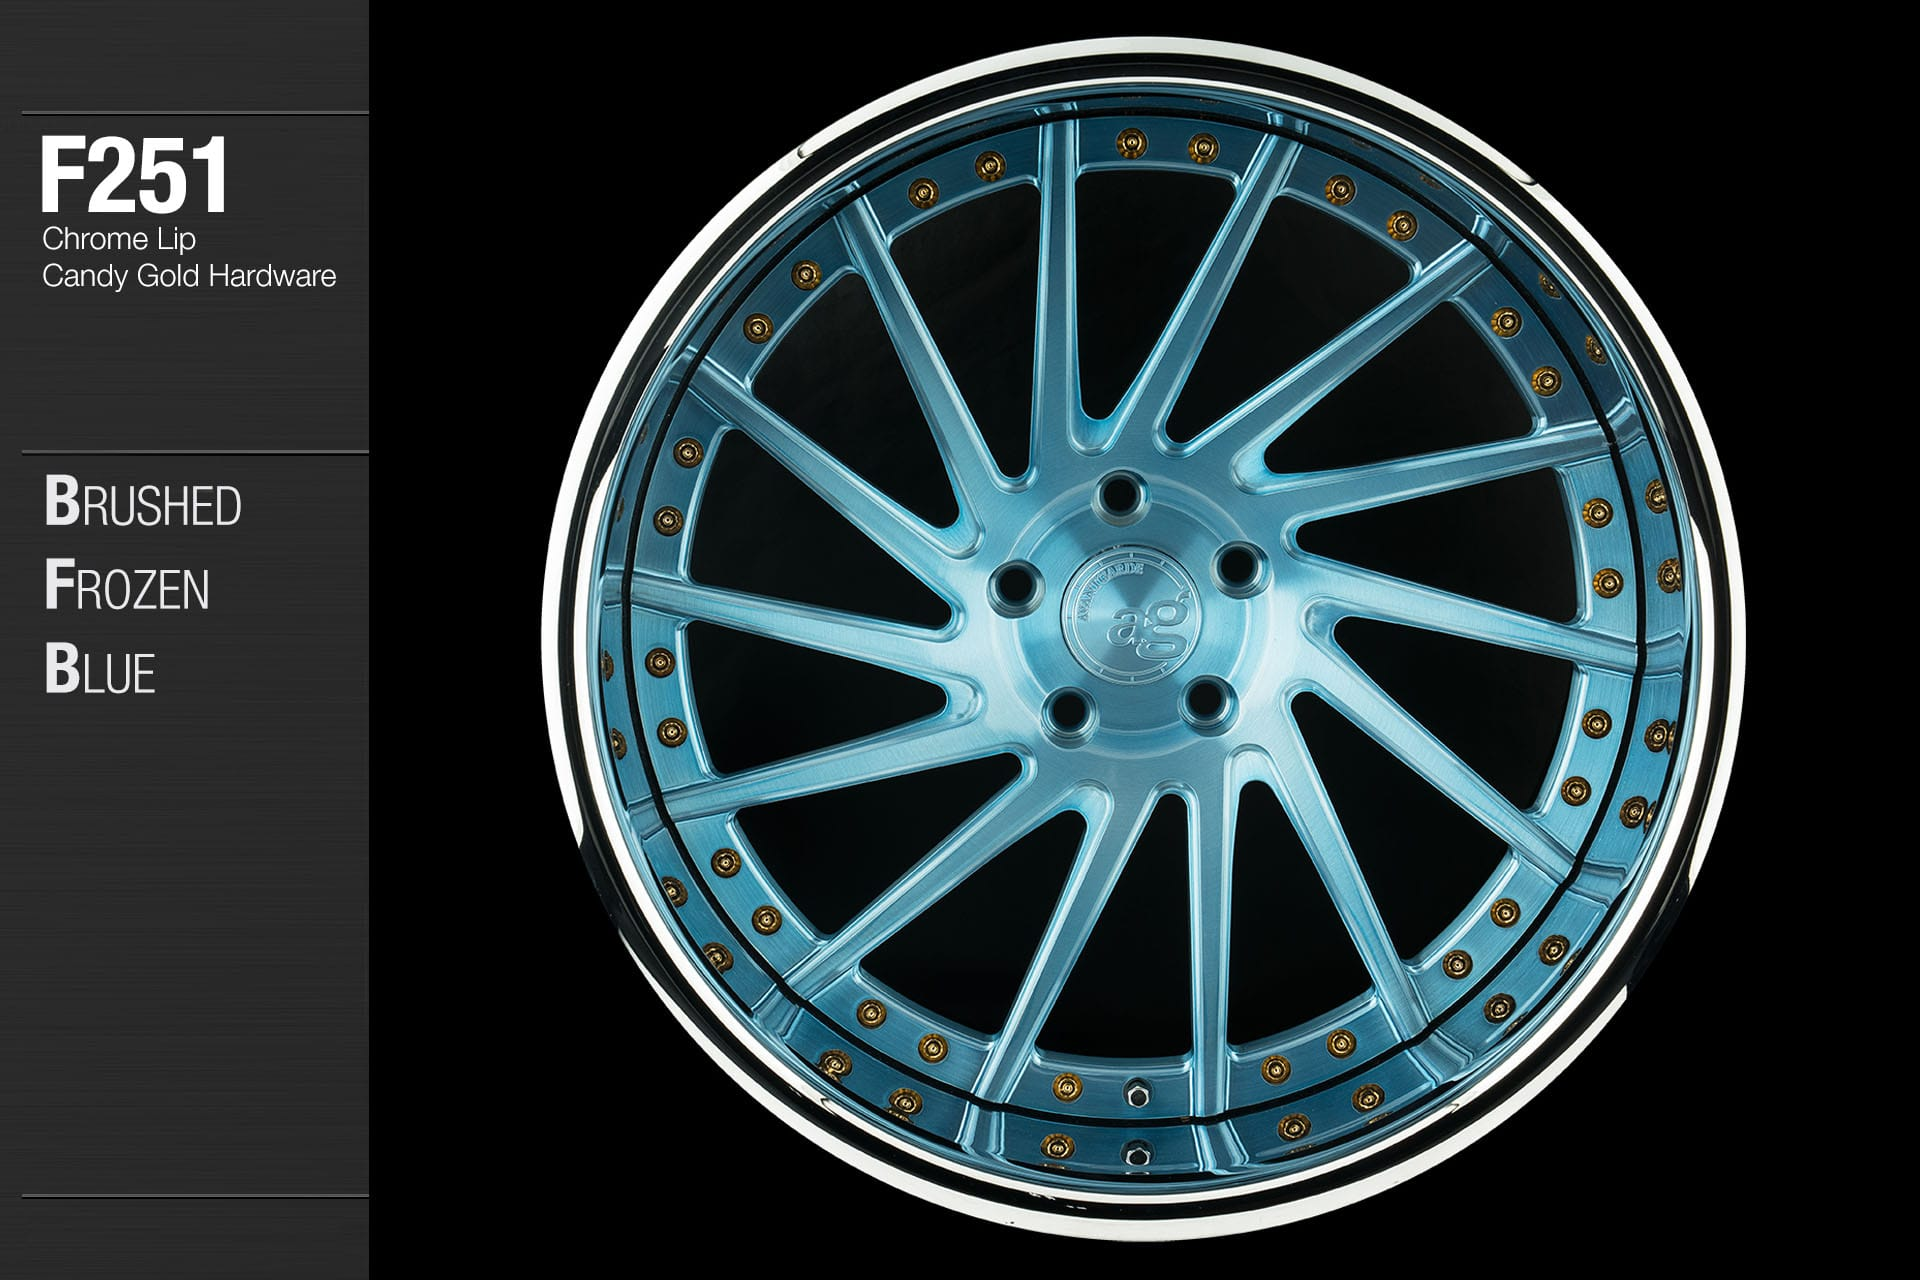 avant-garde-ag-wheels-f251-brushed-frozen-blue-face-chrome-lip-candy-gold-hardware-1-min